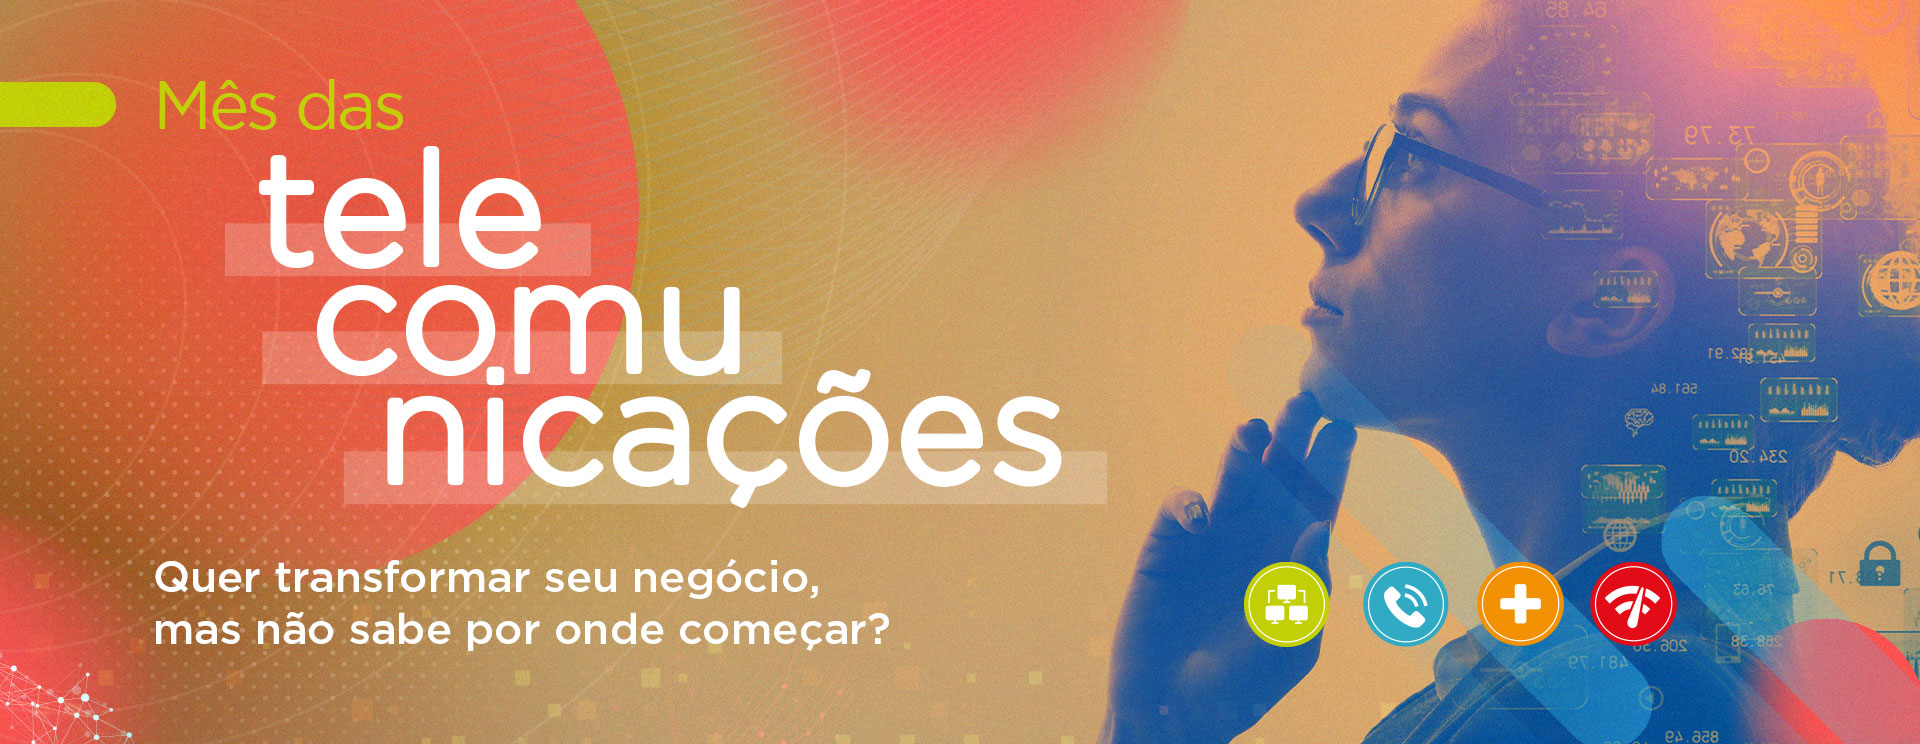 banner-mes-telecomunicacoes